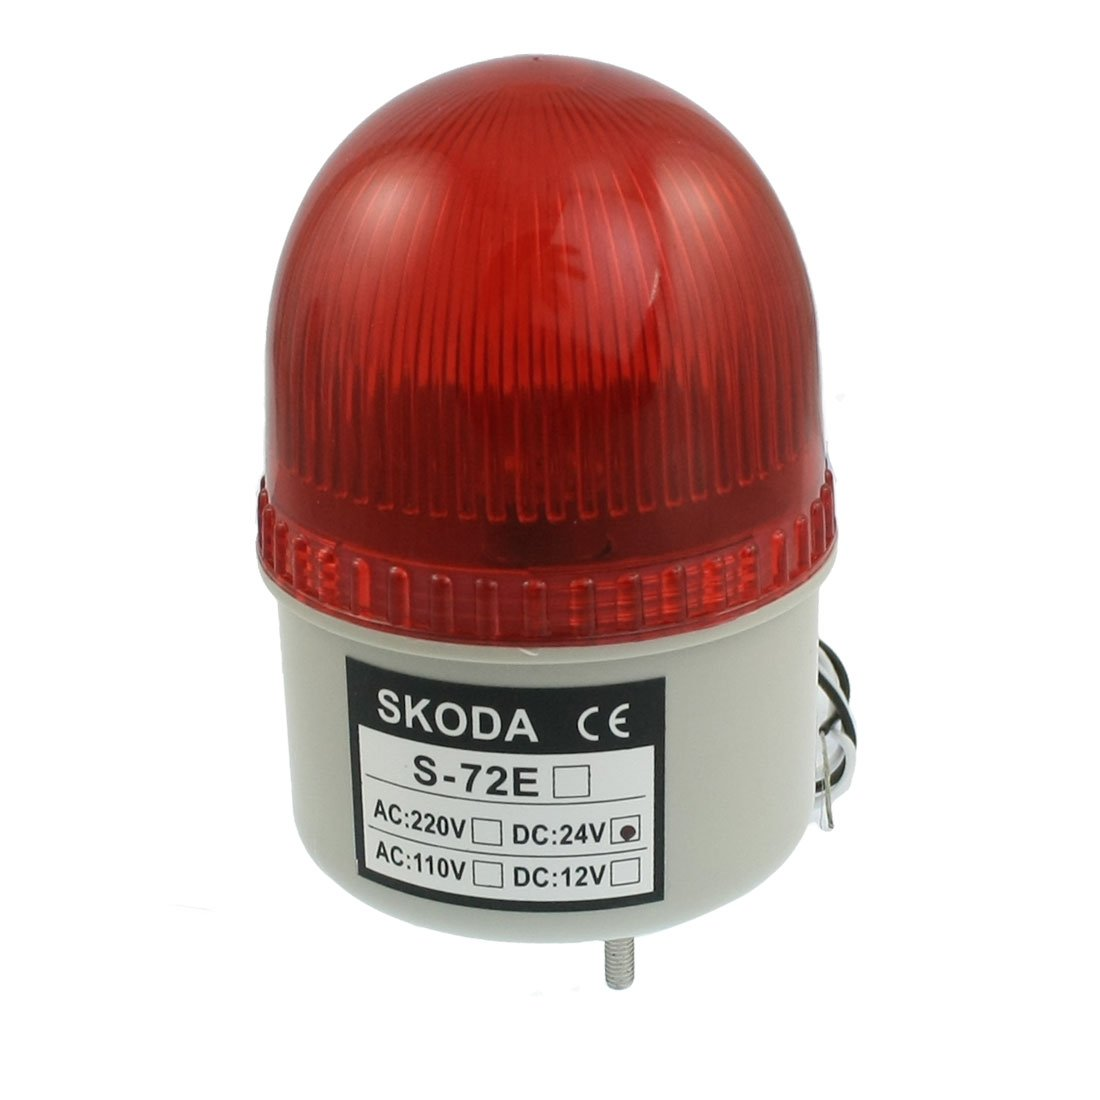 uxcell DC 24V Industrial Signal Tower Red LED Warning Light